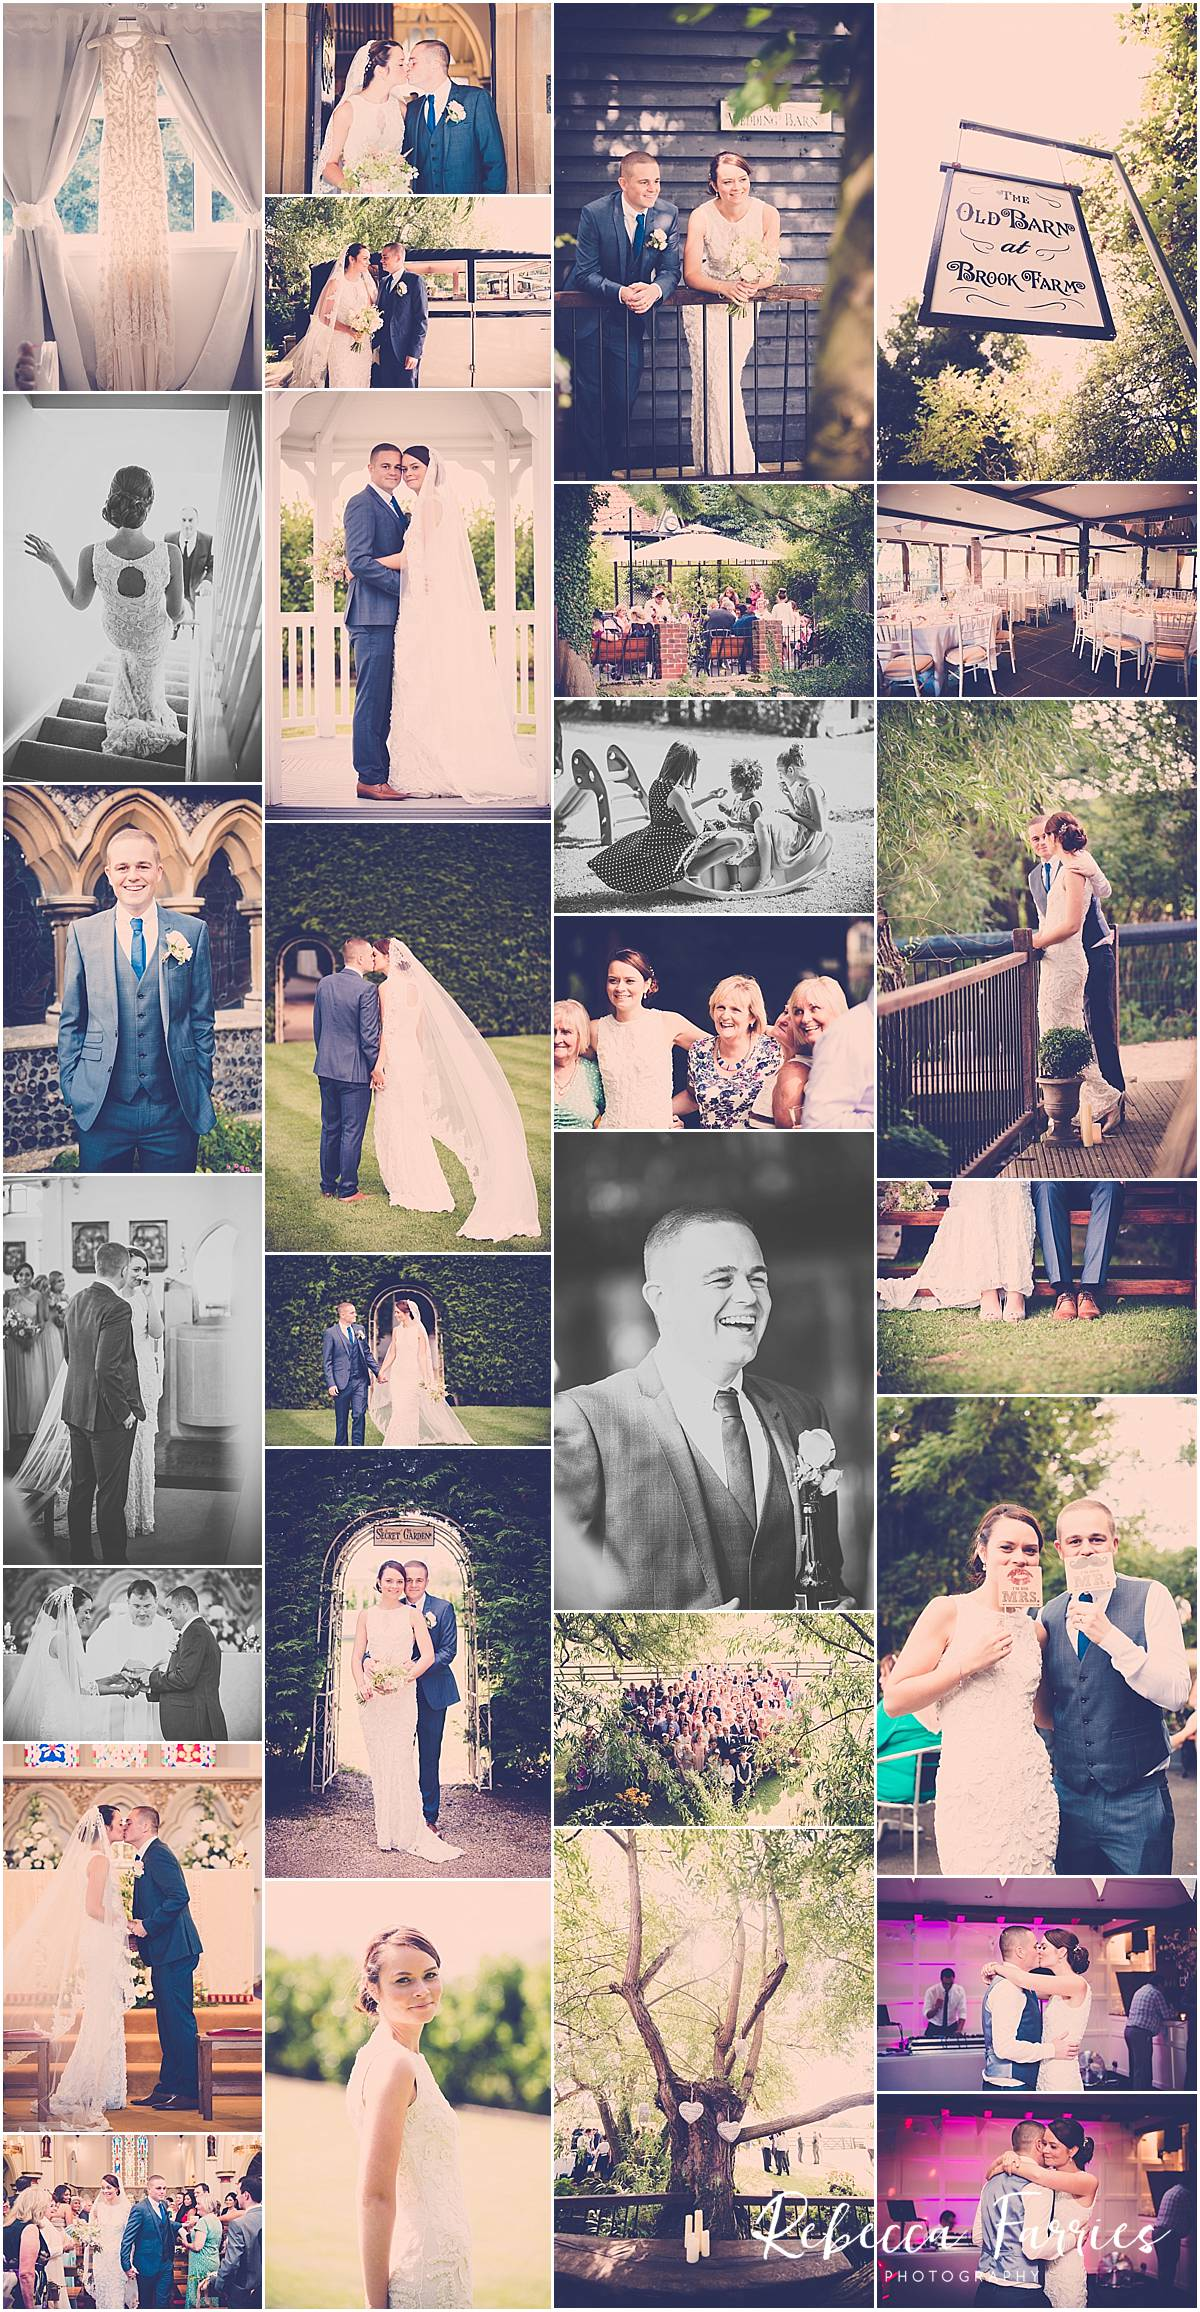 Wedding collage taken at Old Brook Barn in Essex